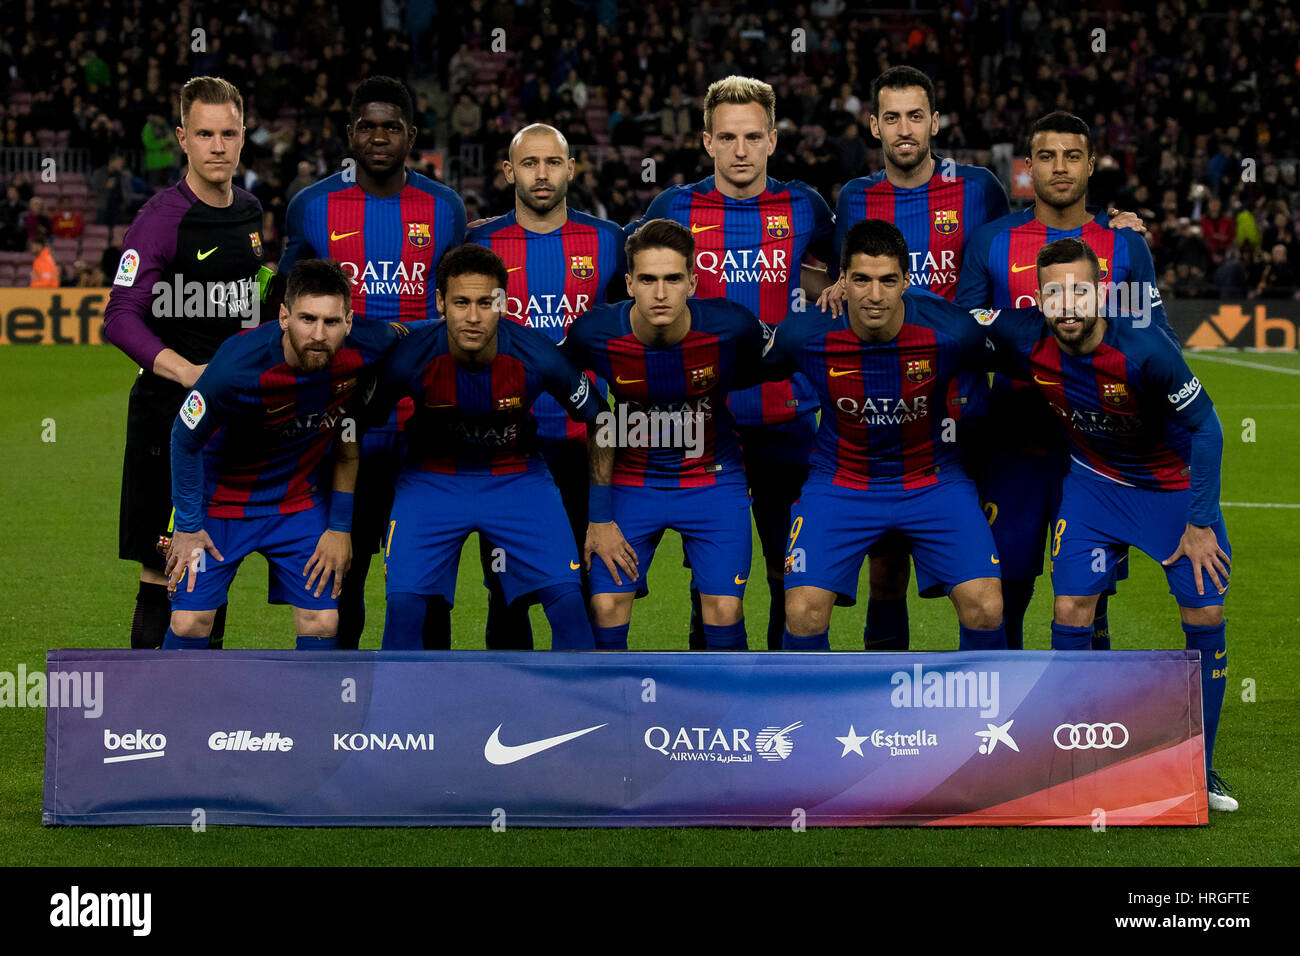 Camp Not Stadium, Barcelona, Spain. 1st March, 2017. Starting 11 of FC Barcelona at Camp Nou Stadium, Barcelona, - Stock Image